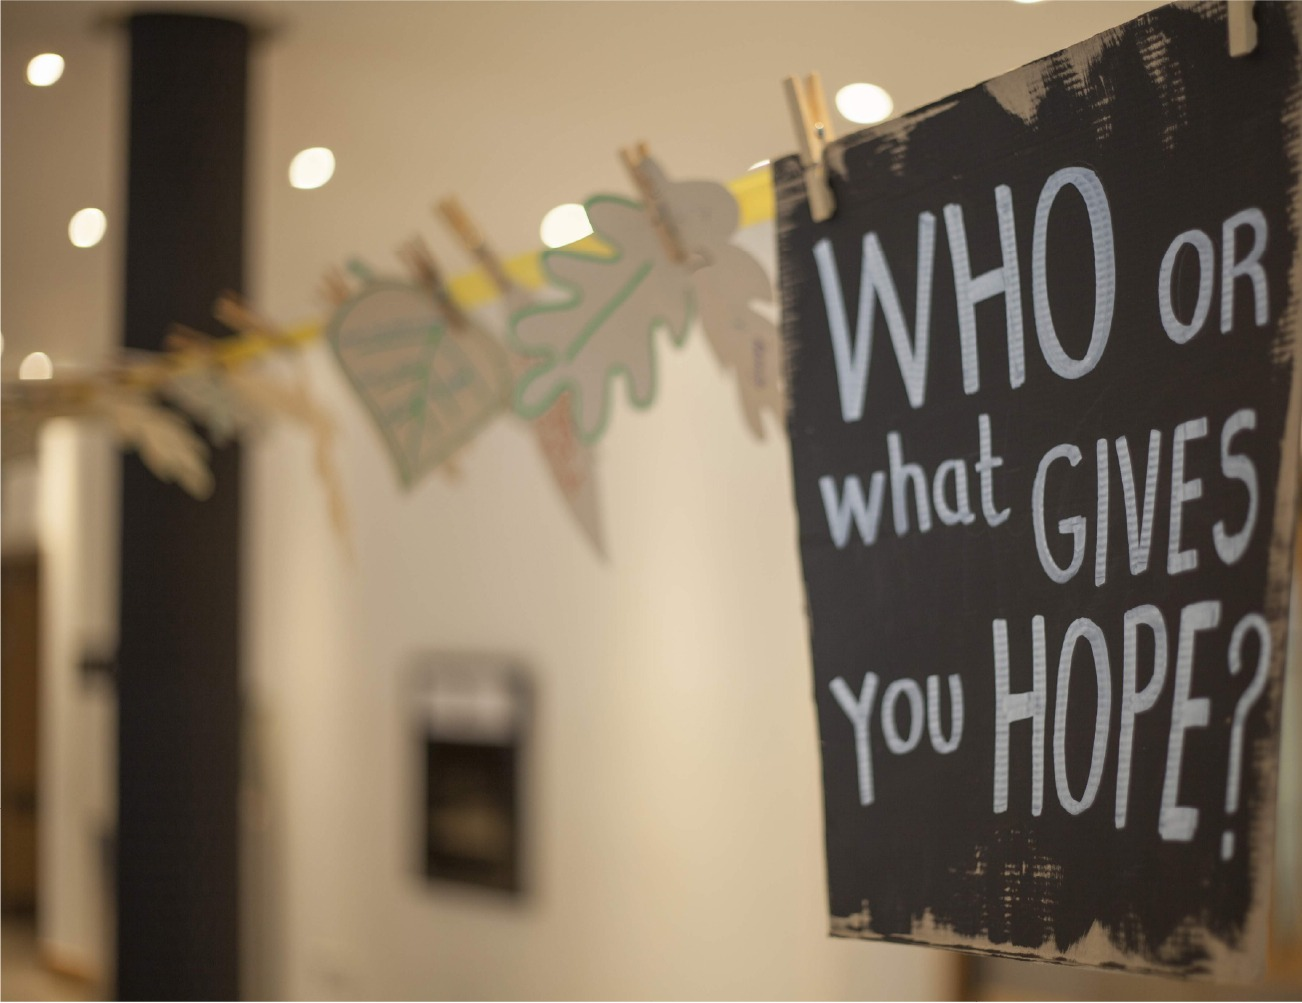 A handwritten sign read 'Who or what gives you hope?'